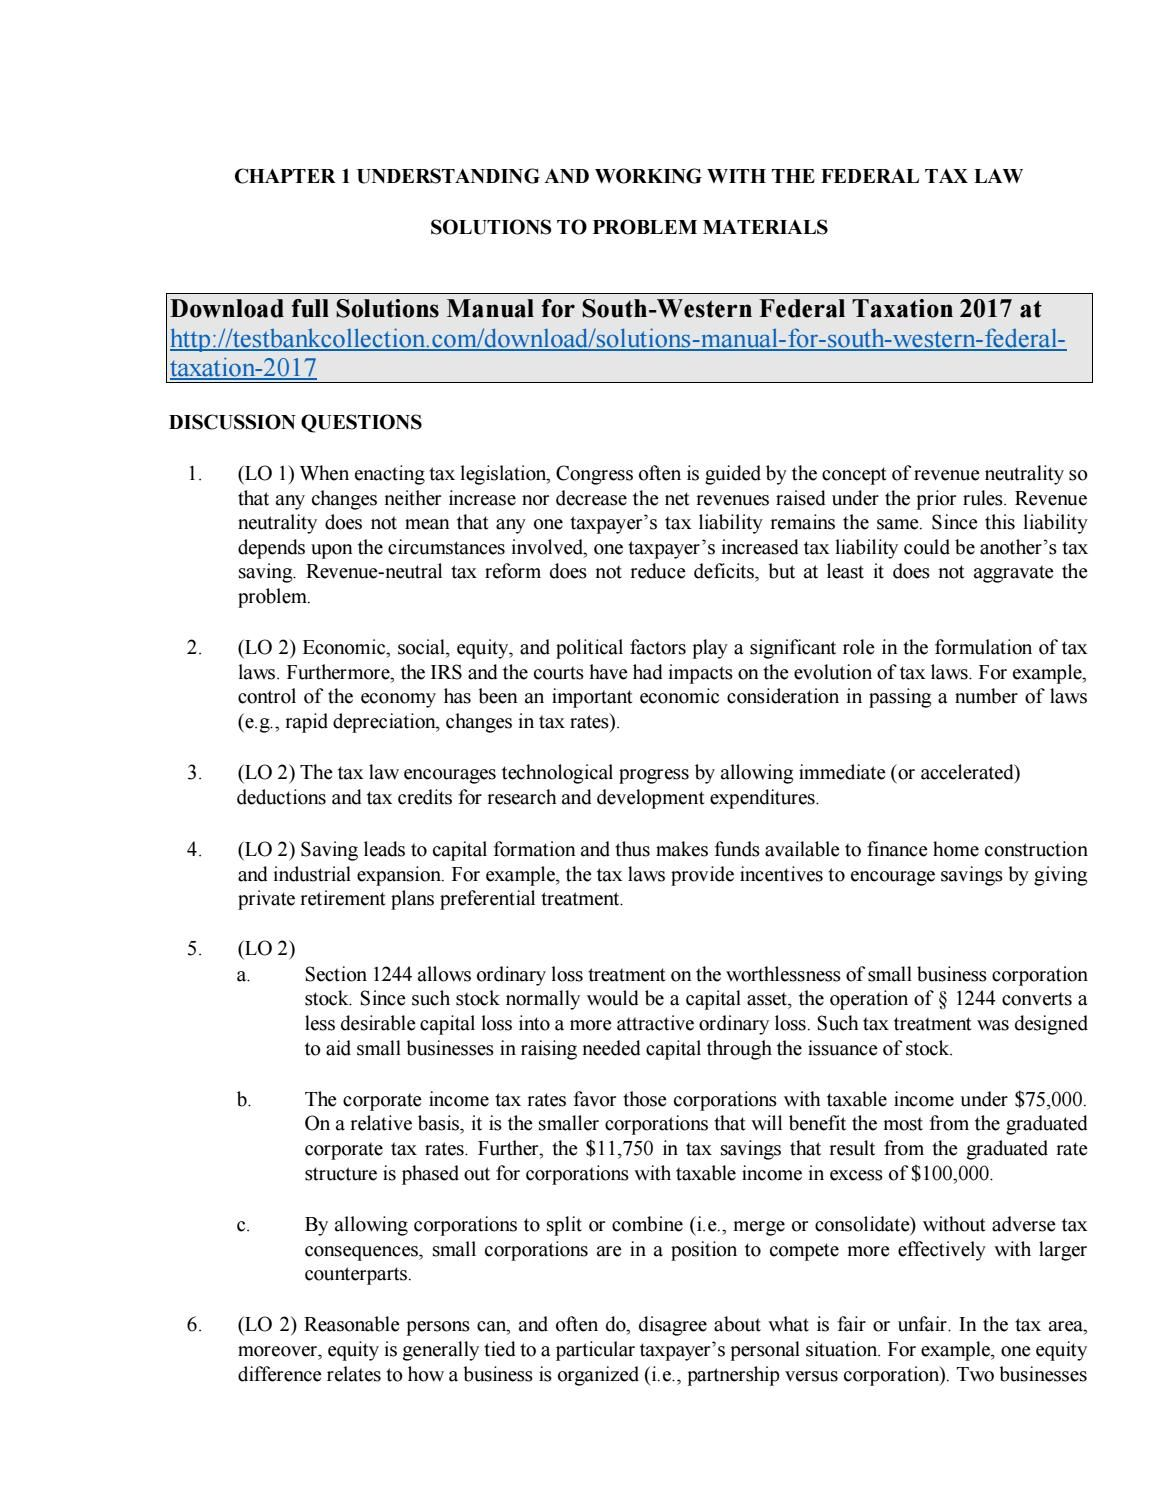 solutions manual for south western federal taxation 2017 pinterest rh pinterest com Tax Code Tax From Total